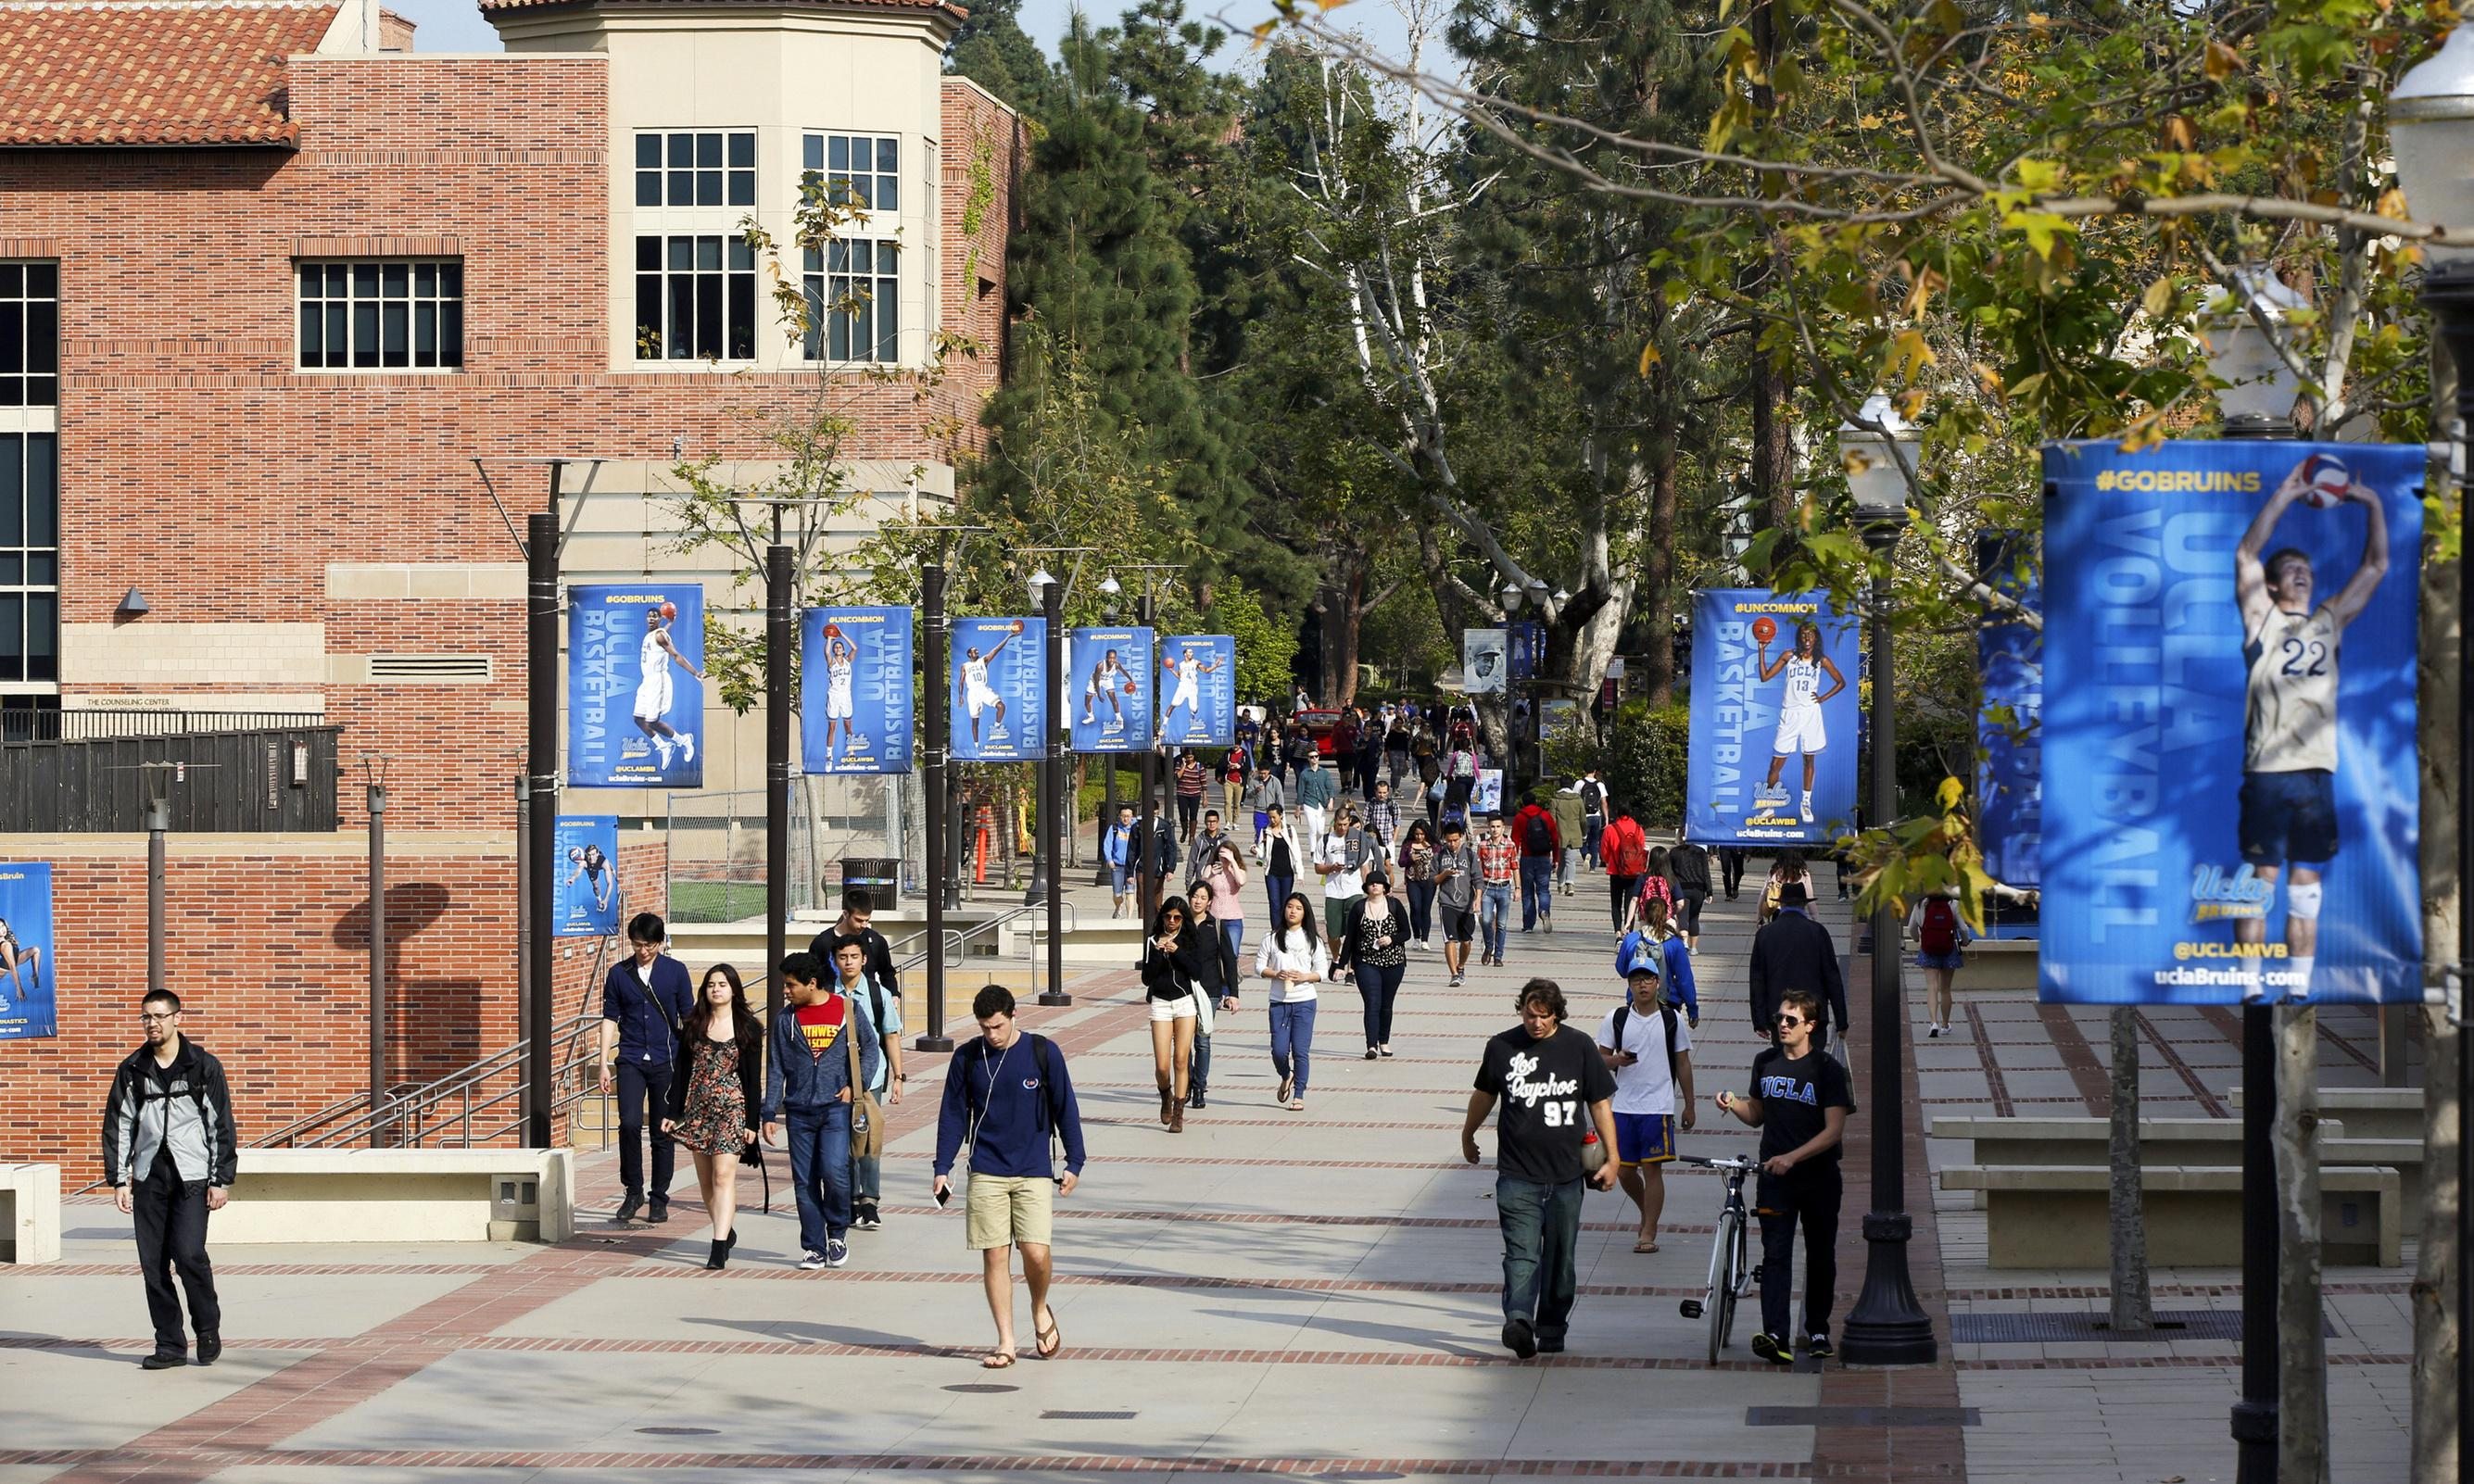 More than 300 quarantined amid measles fears at Los Angeles universities